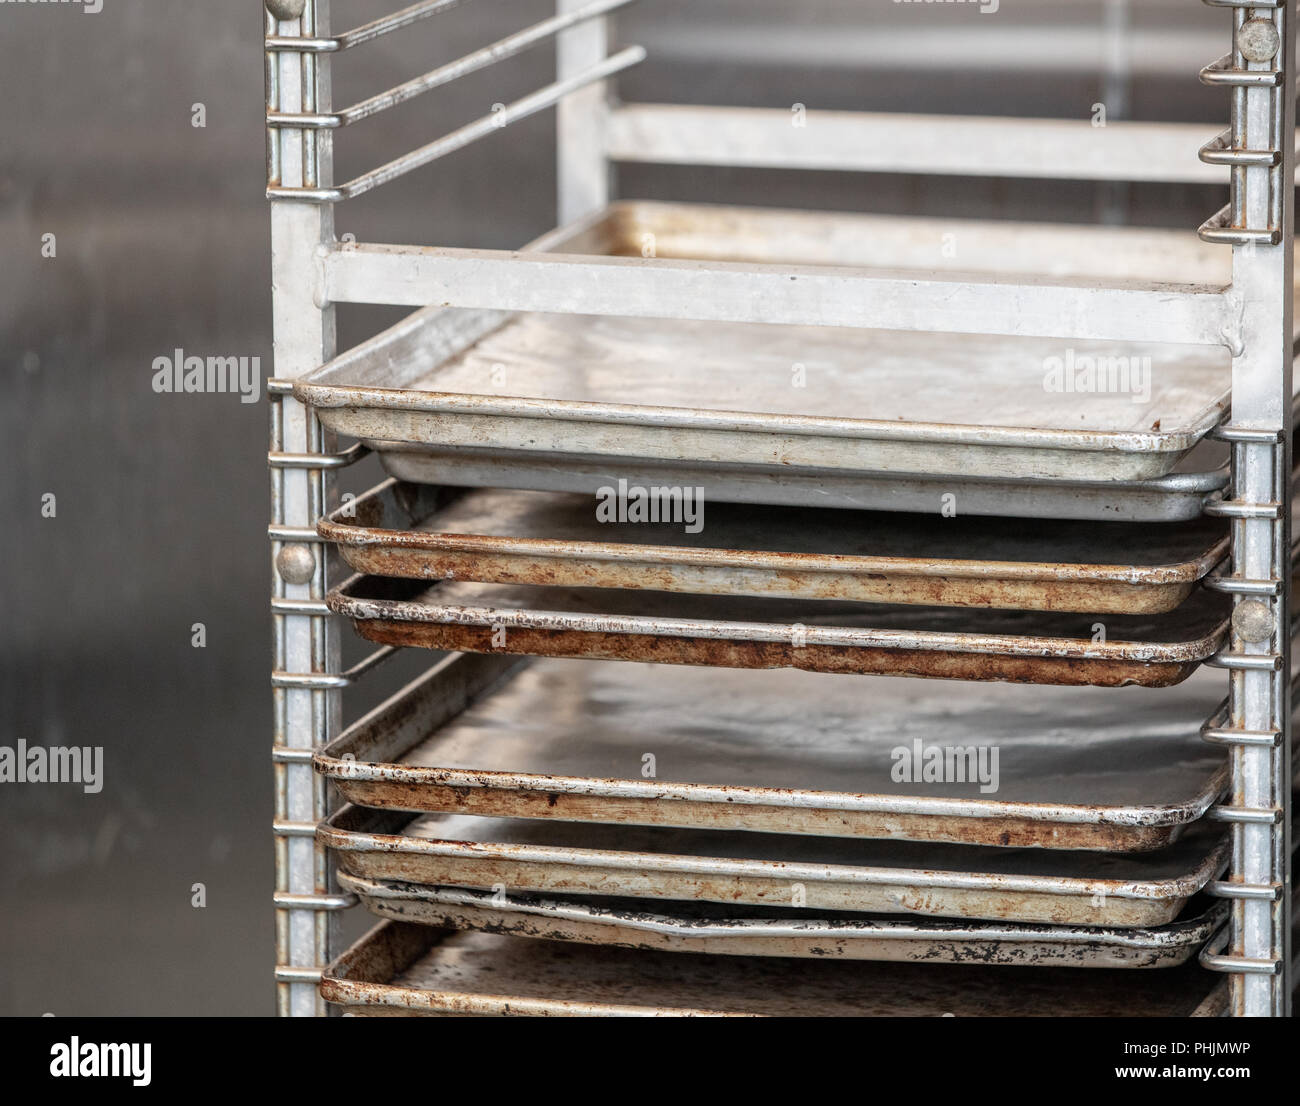 rack holding sheet pans in a commercial kitchen Stock Photo